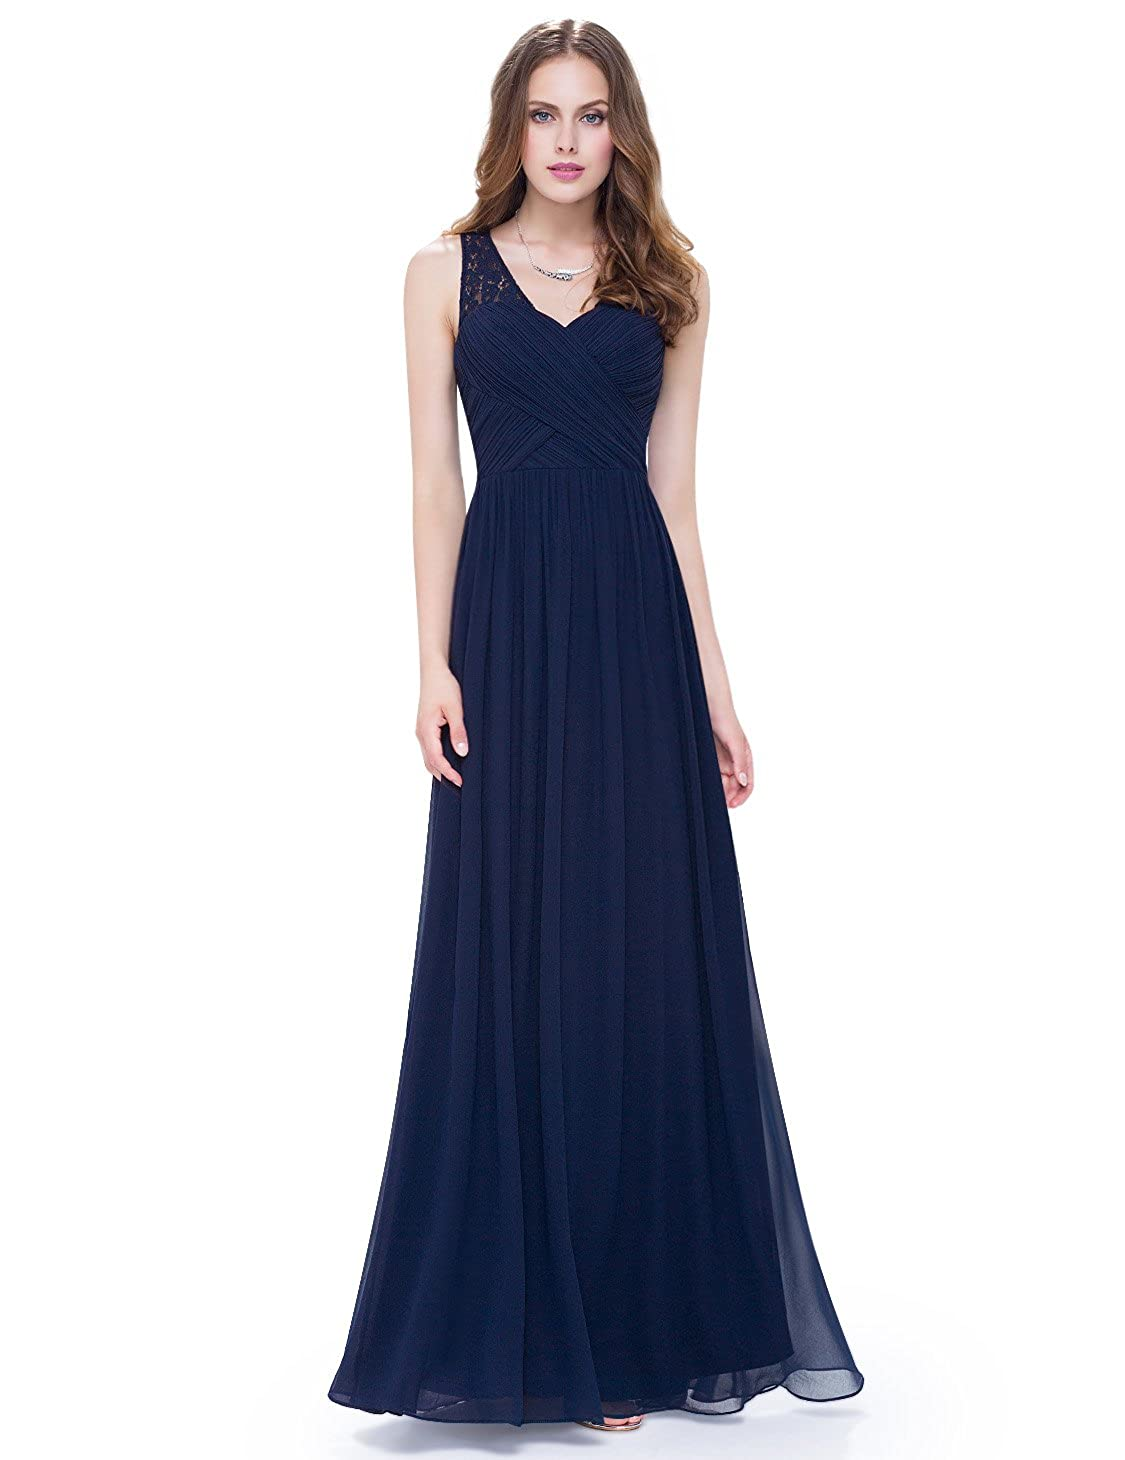 0fcbaf1ba48c Detailed Size Info Please Check Left Image, Not Size Info Link. It is US  Size when you place order. Women\'s elegant V-neck long evening party dress.